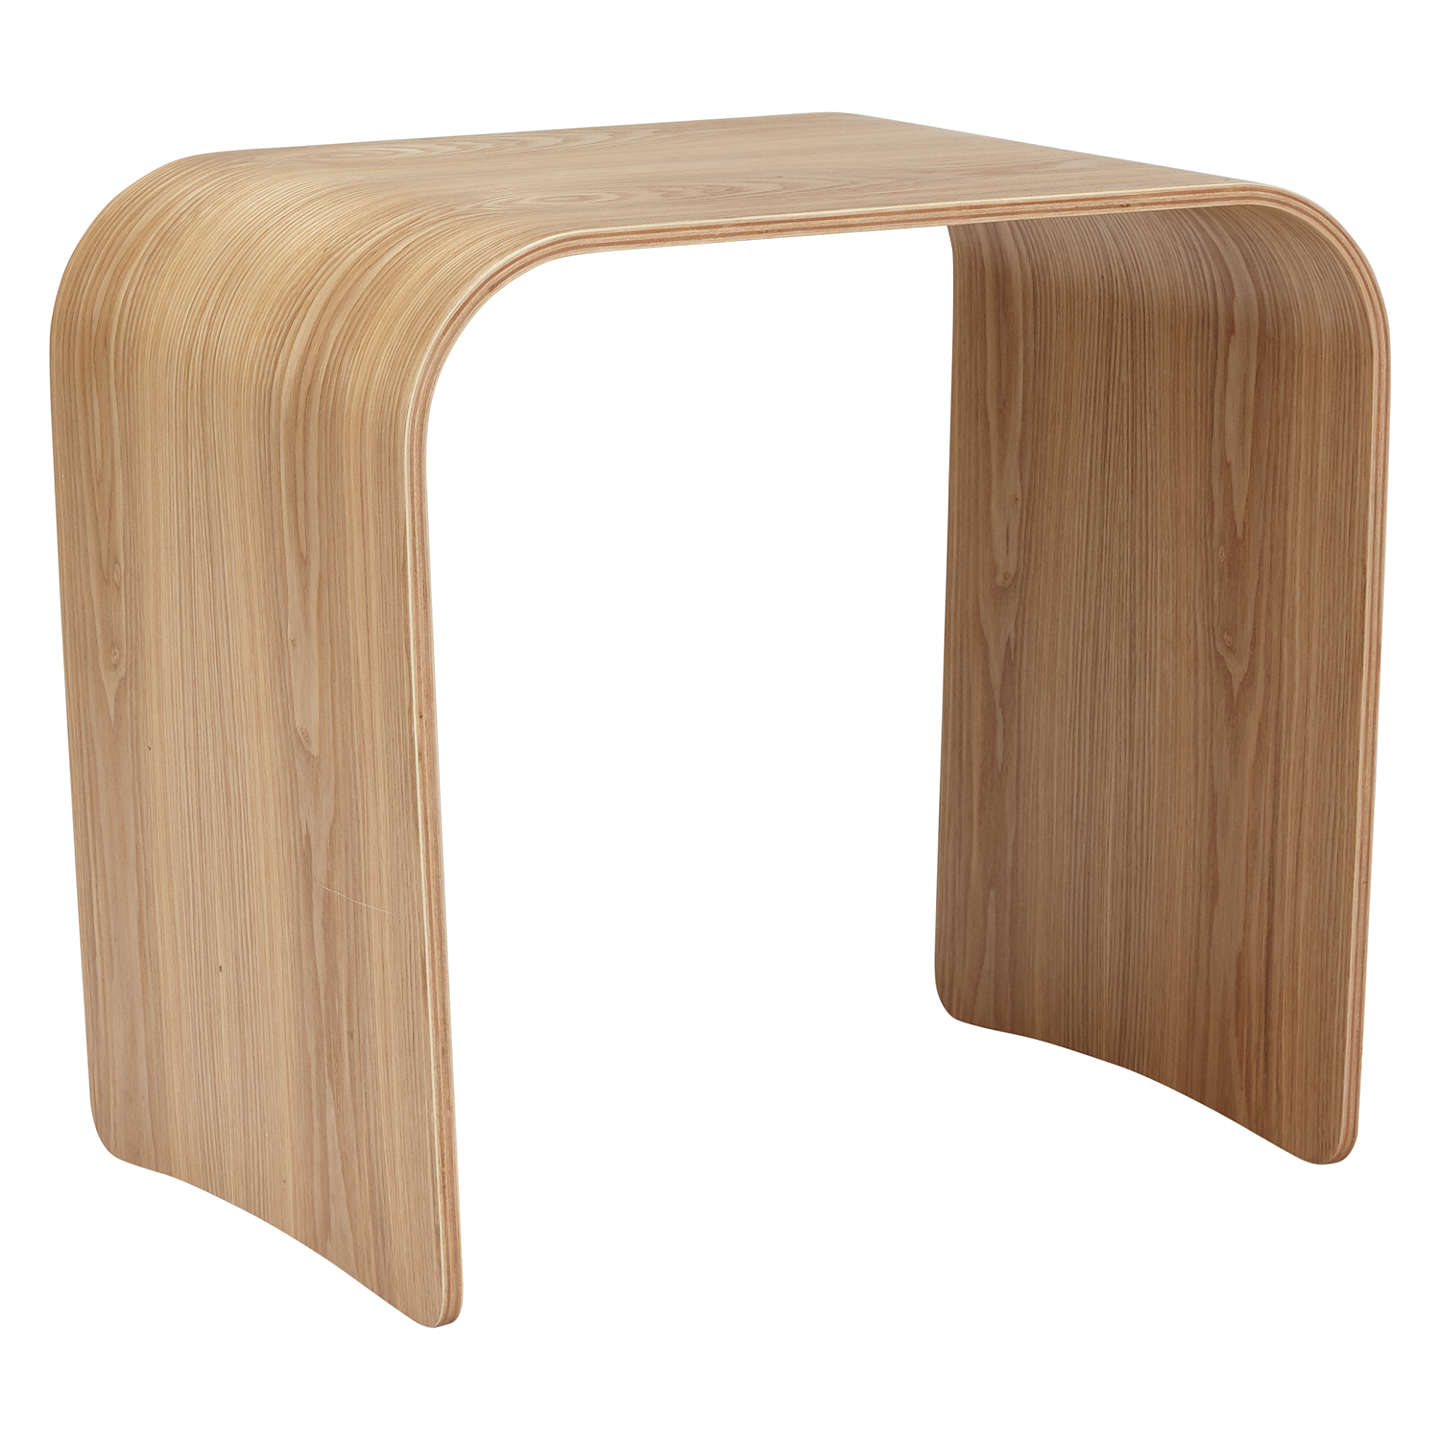 House by john lewis bentwood nest of 3 tables ash at john for John lewis chinese furniture